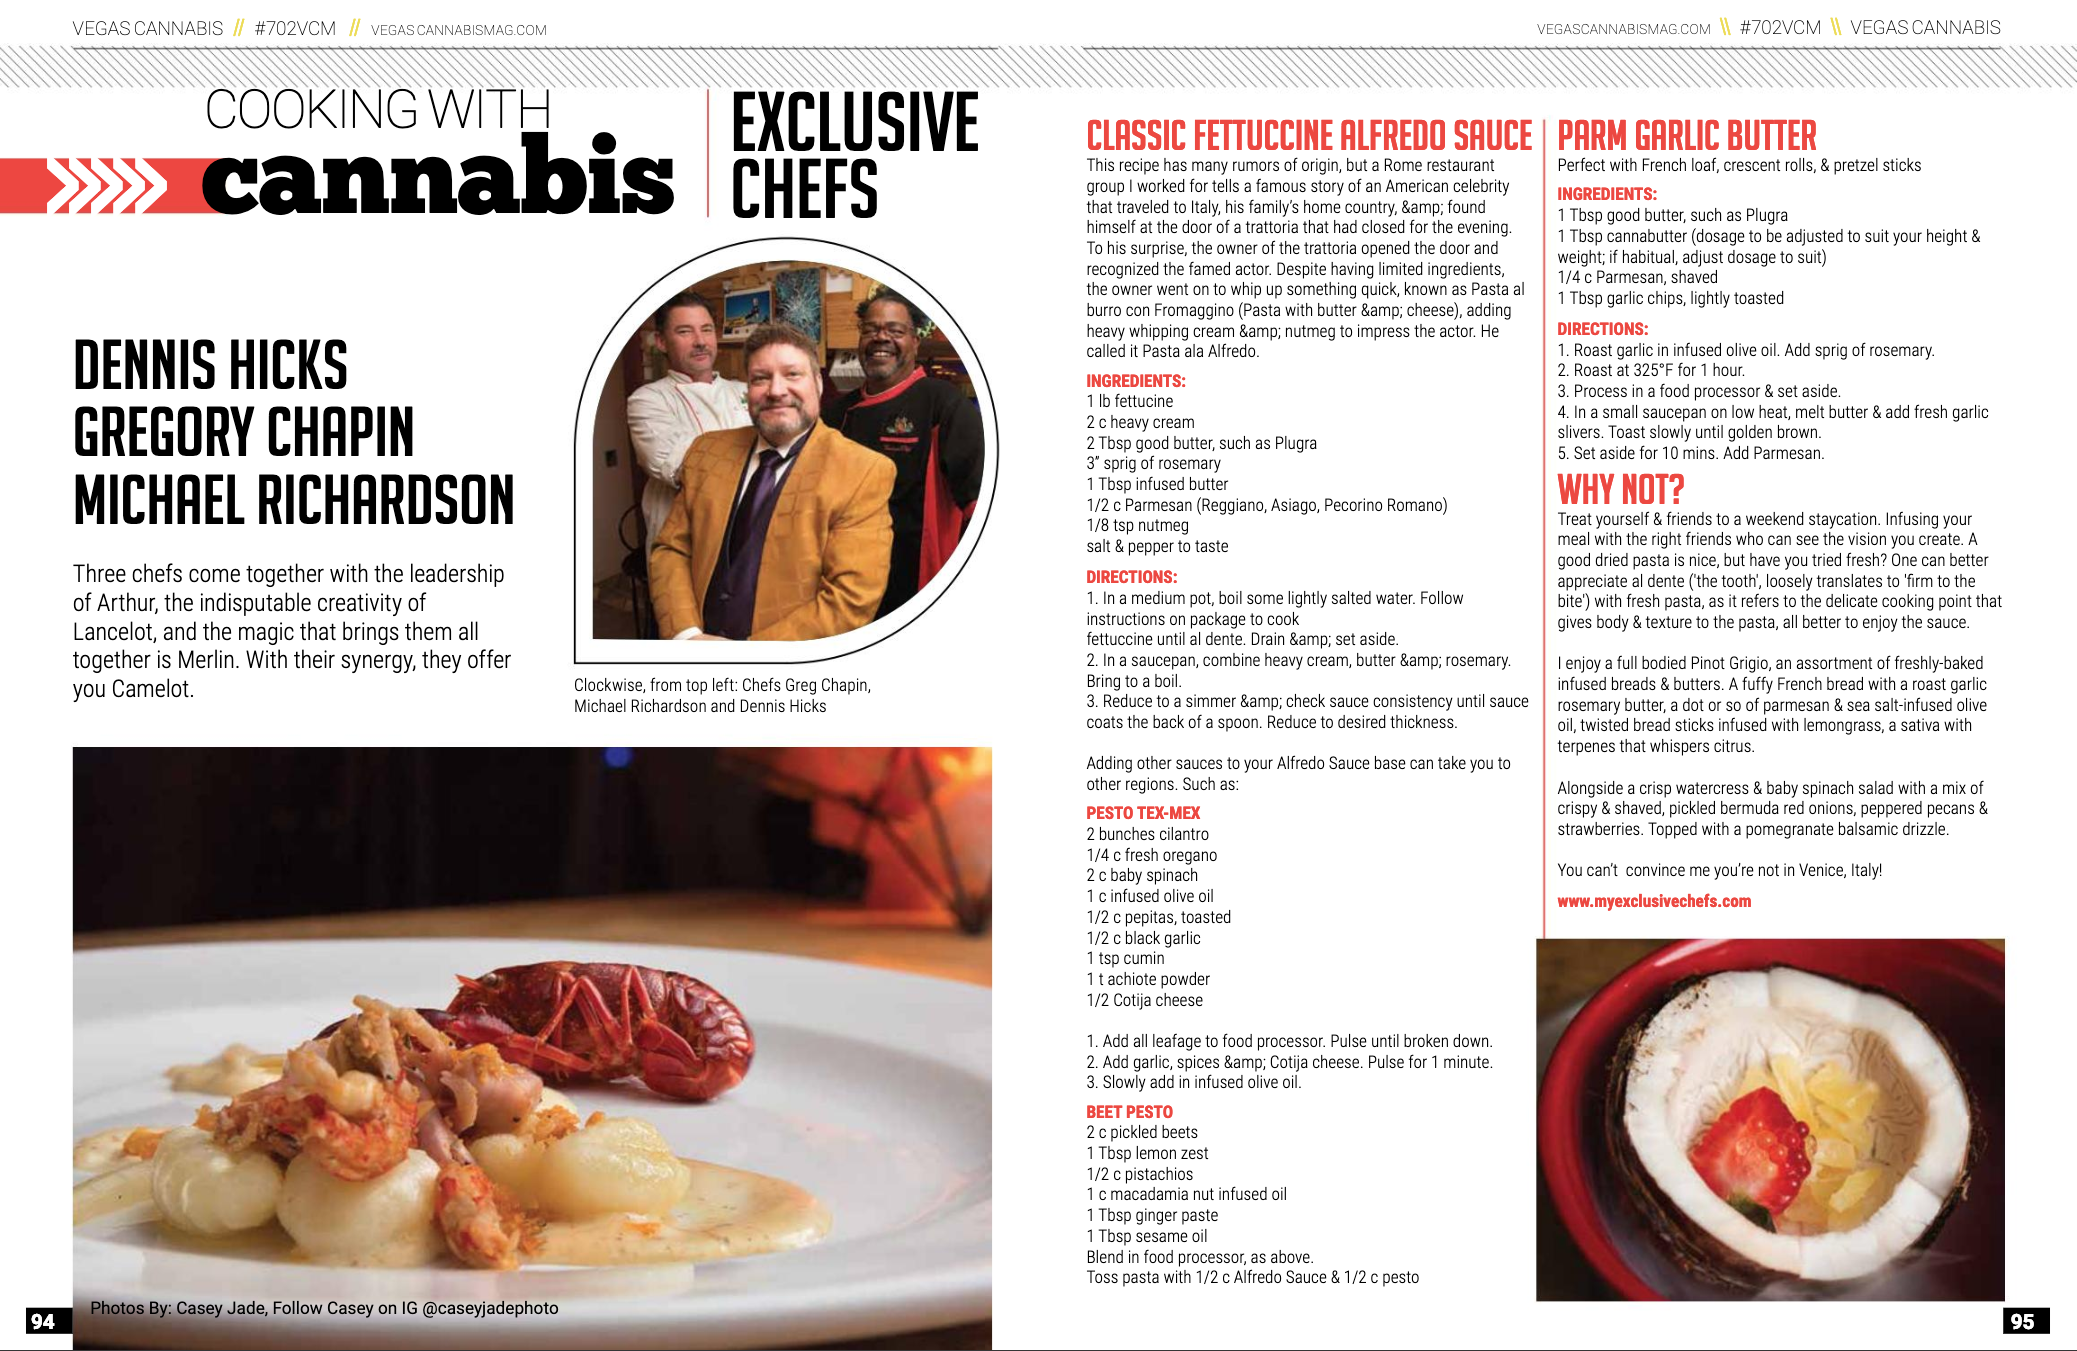 vegas-cannabis-magazine-exclusive-chefs-casey-jade-photography